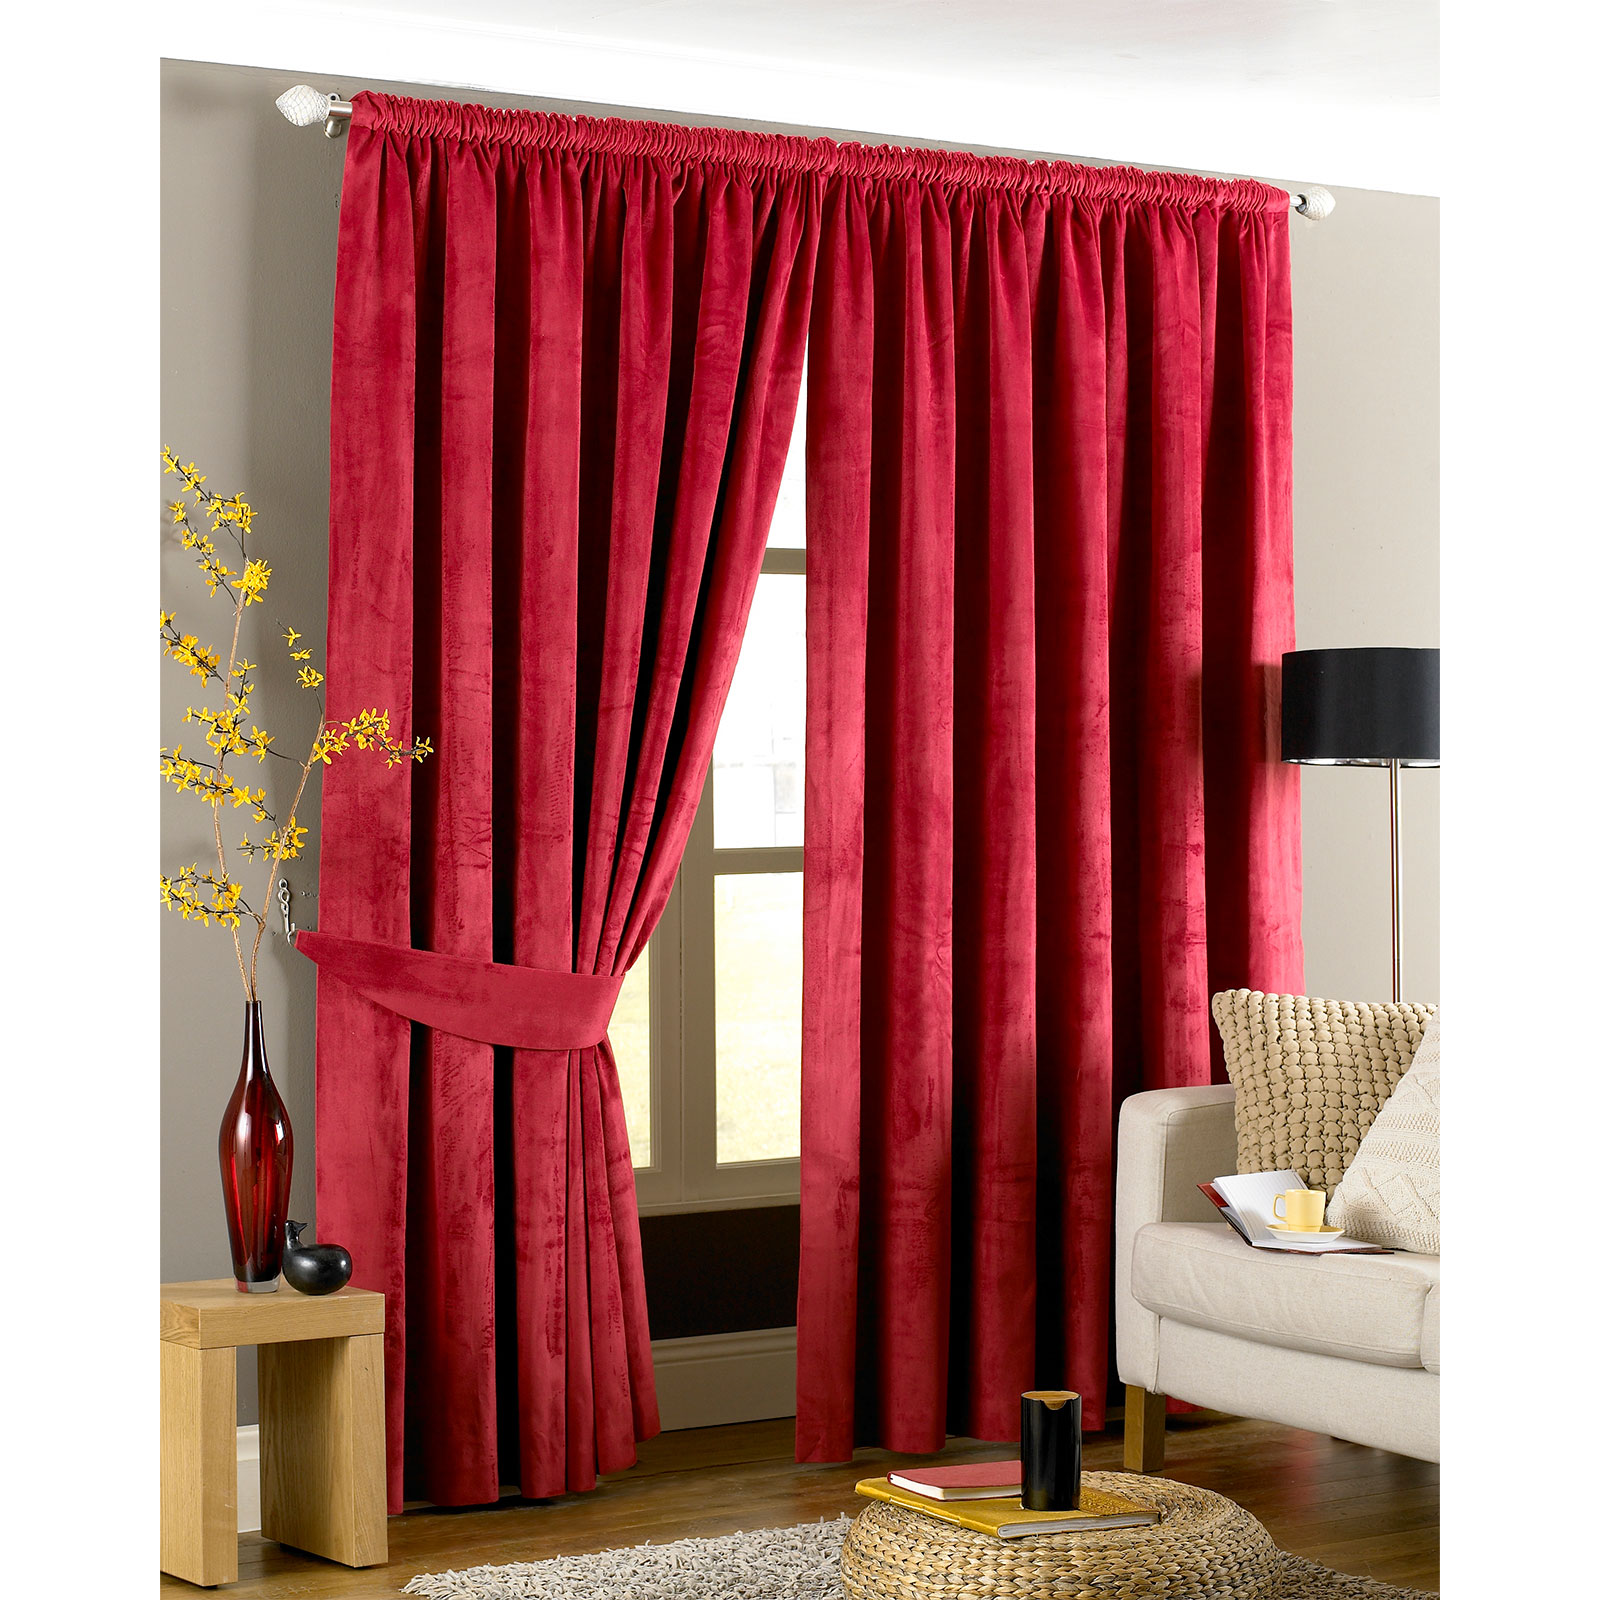 velvet pencil pleat curtains ready made fully lined. Black Bedroom Furniture Sets. Home Design Ideas